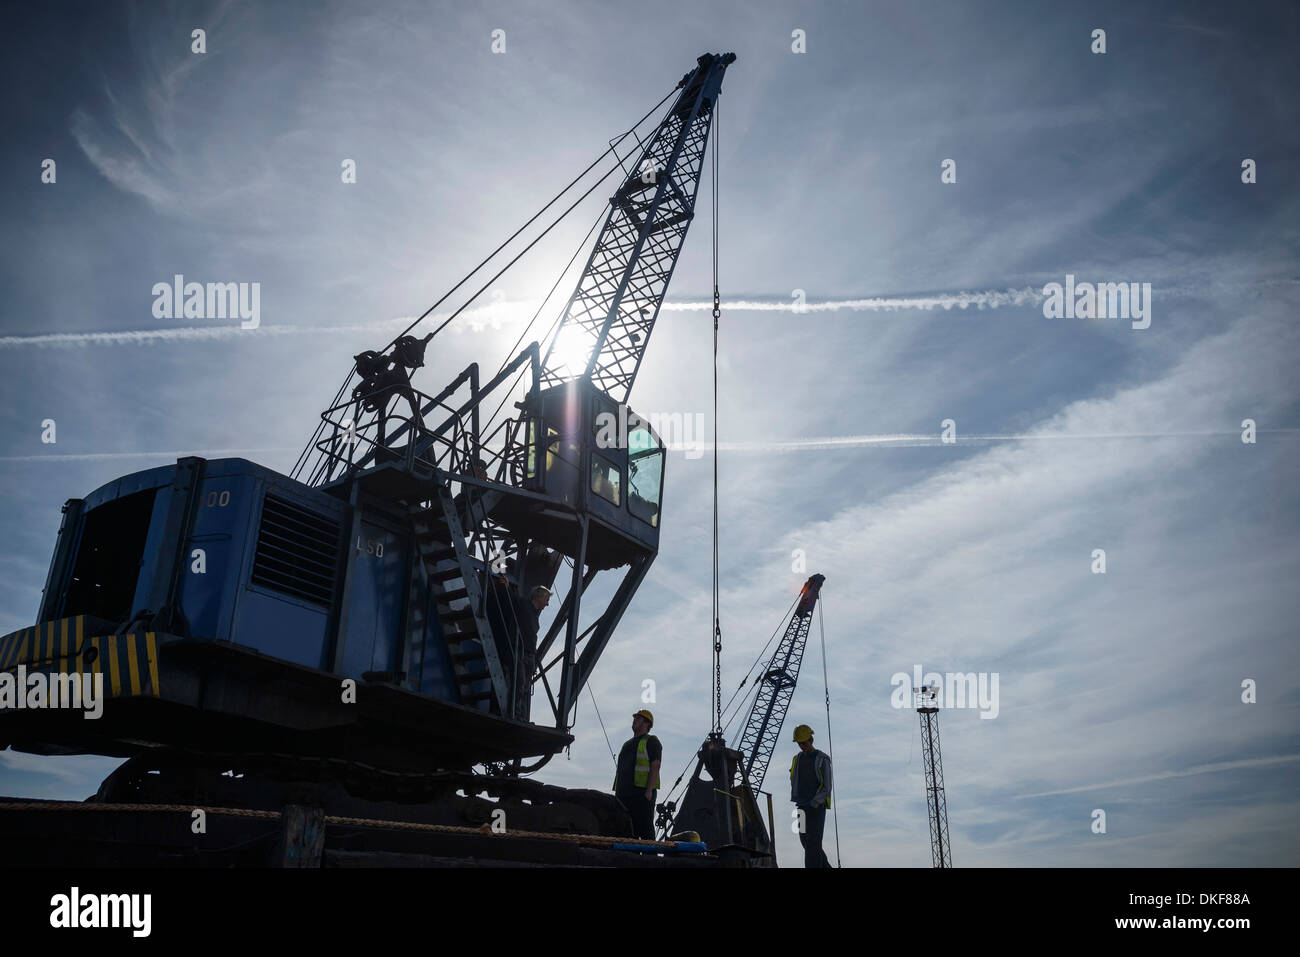 Low angle view of workers and crane in silhouette in port Stock Photo